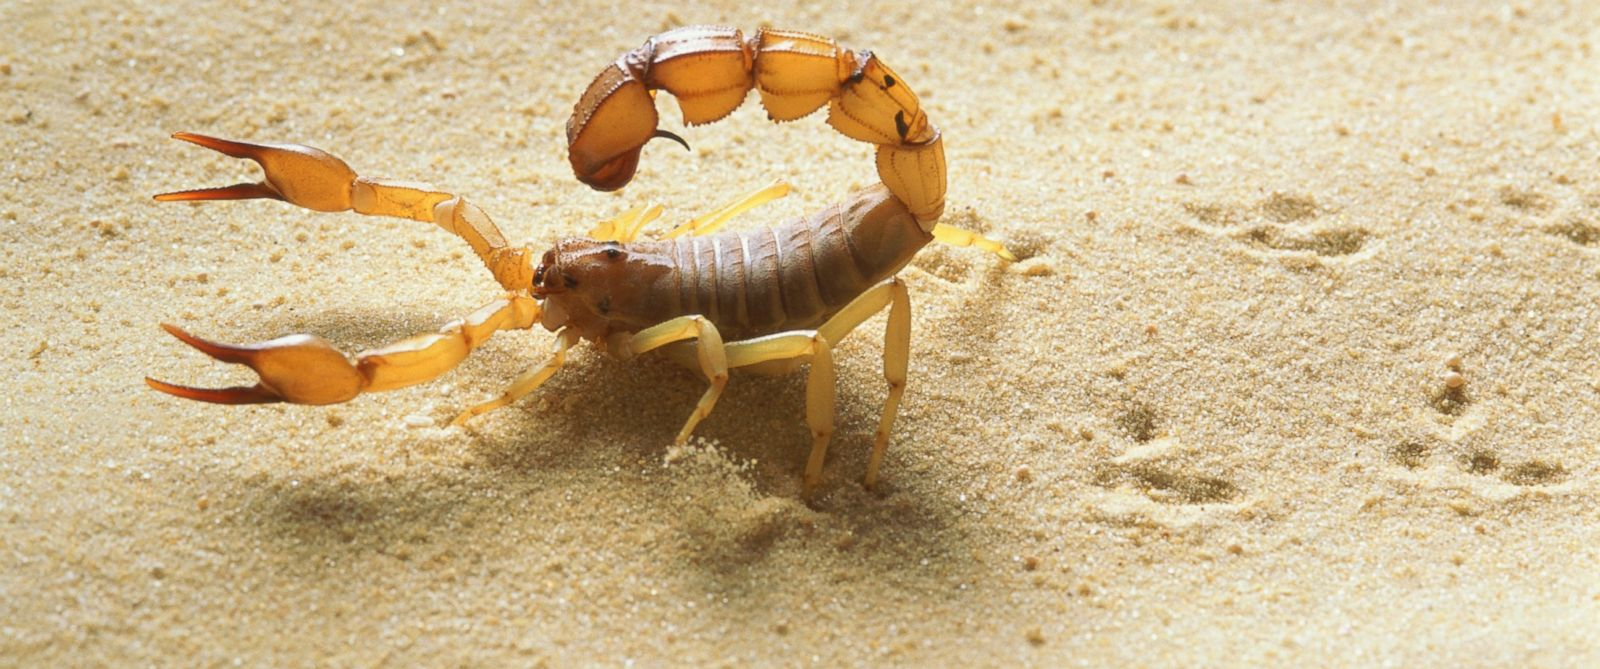 PHOTO: A yellow fat tail scorpion is seen close-up in this stock image.